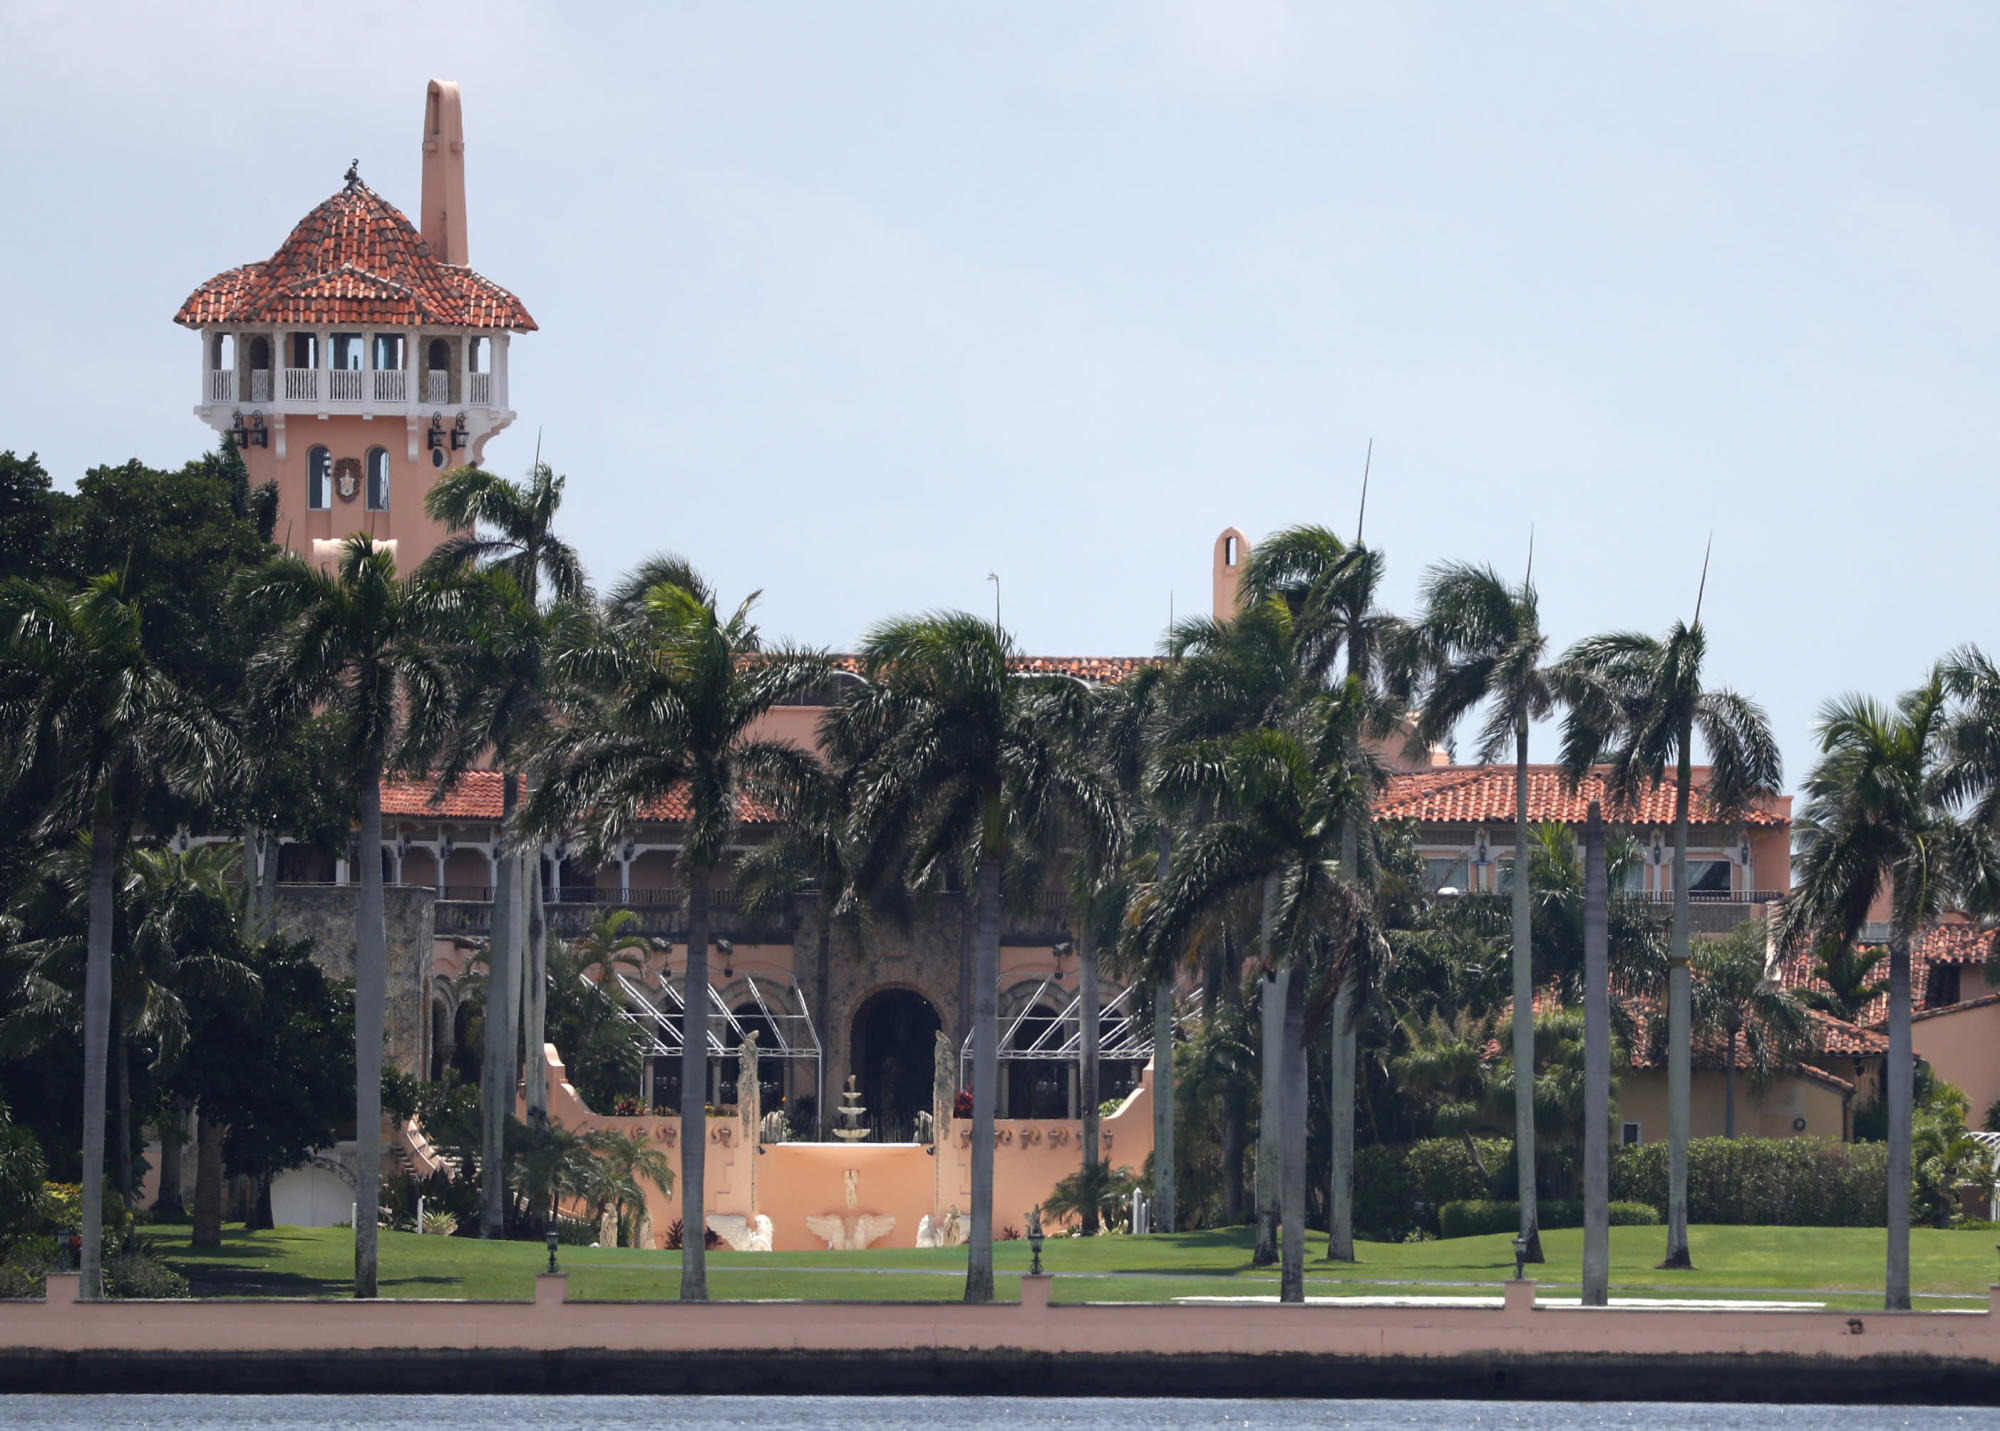 Trump's Mar-a-Lago warned over coronavirus mask violations